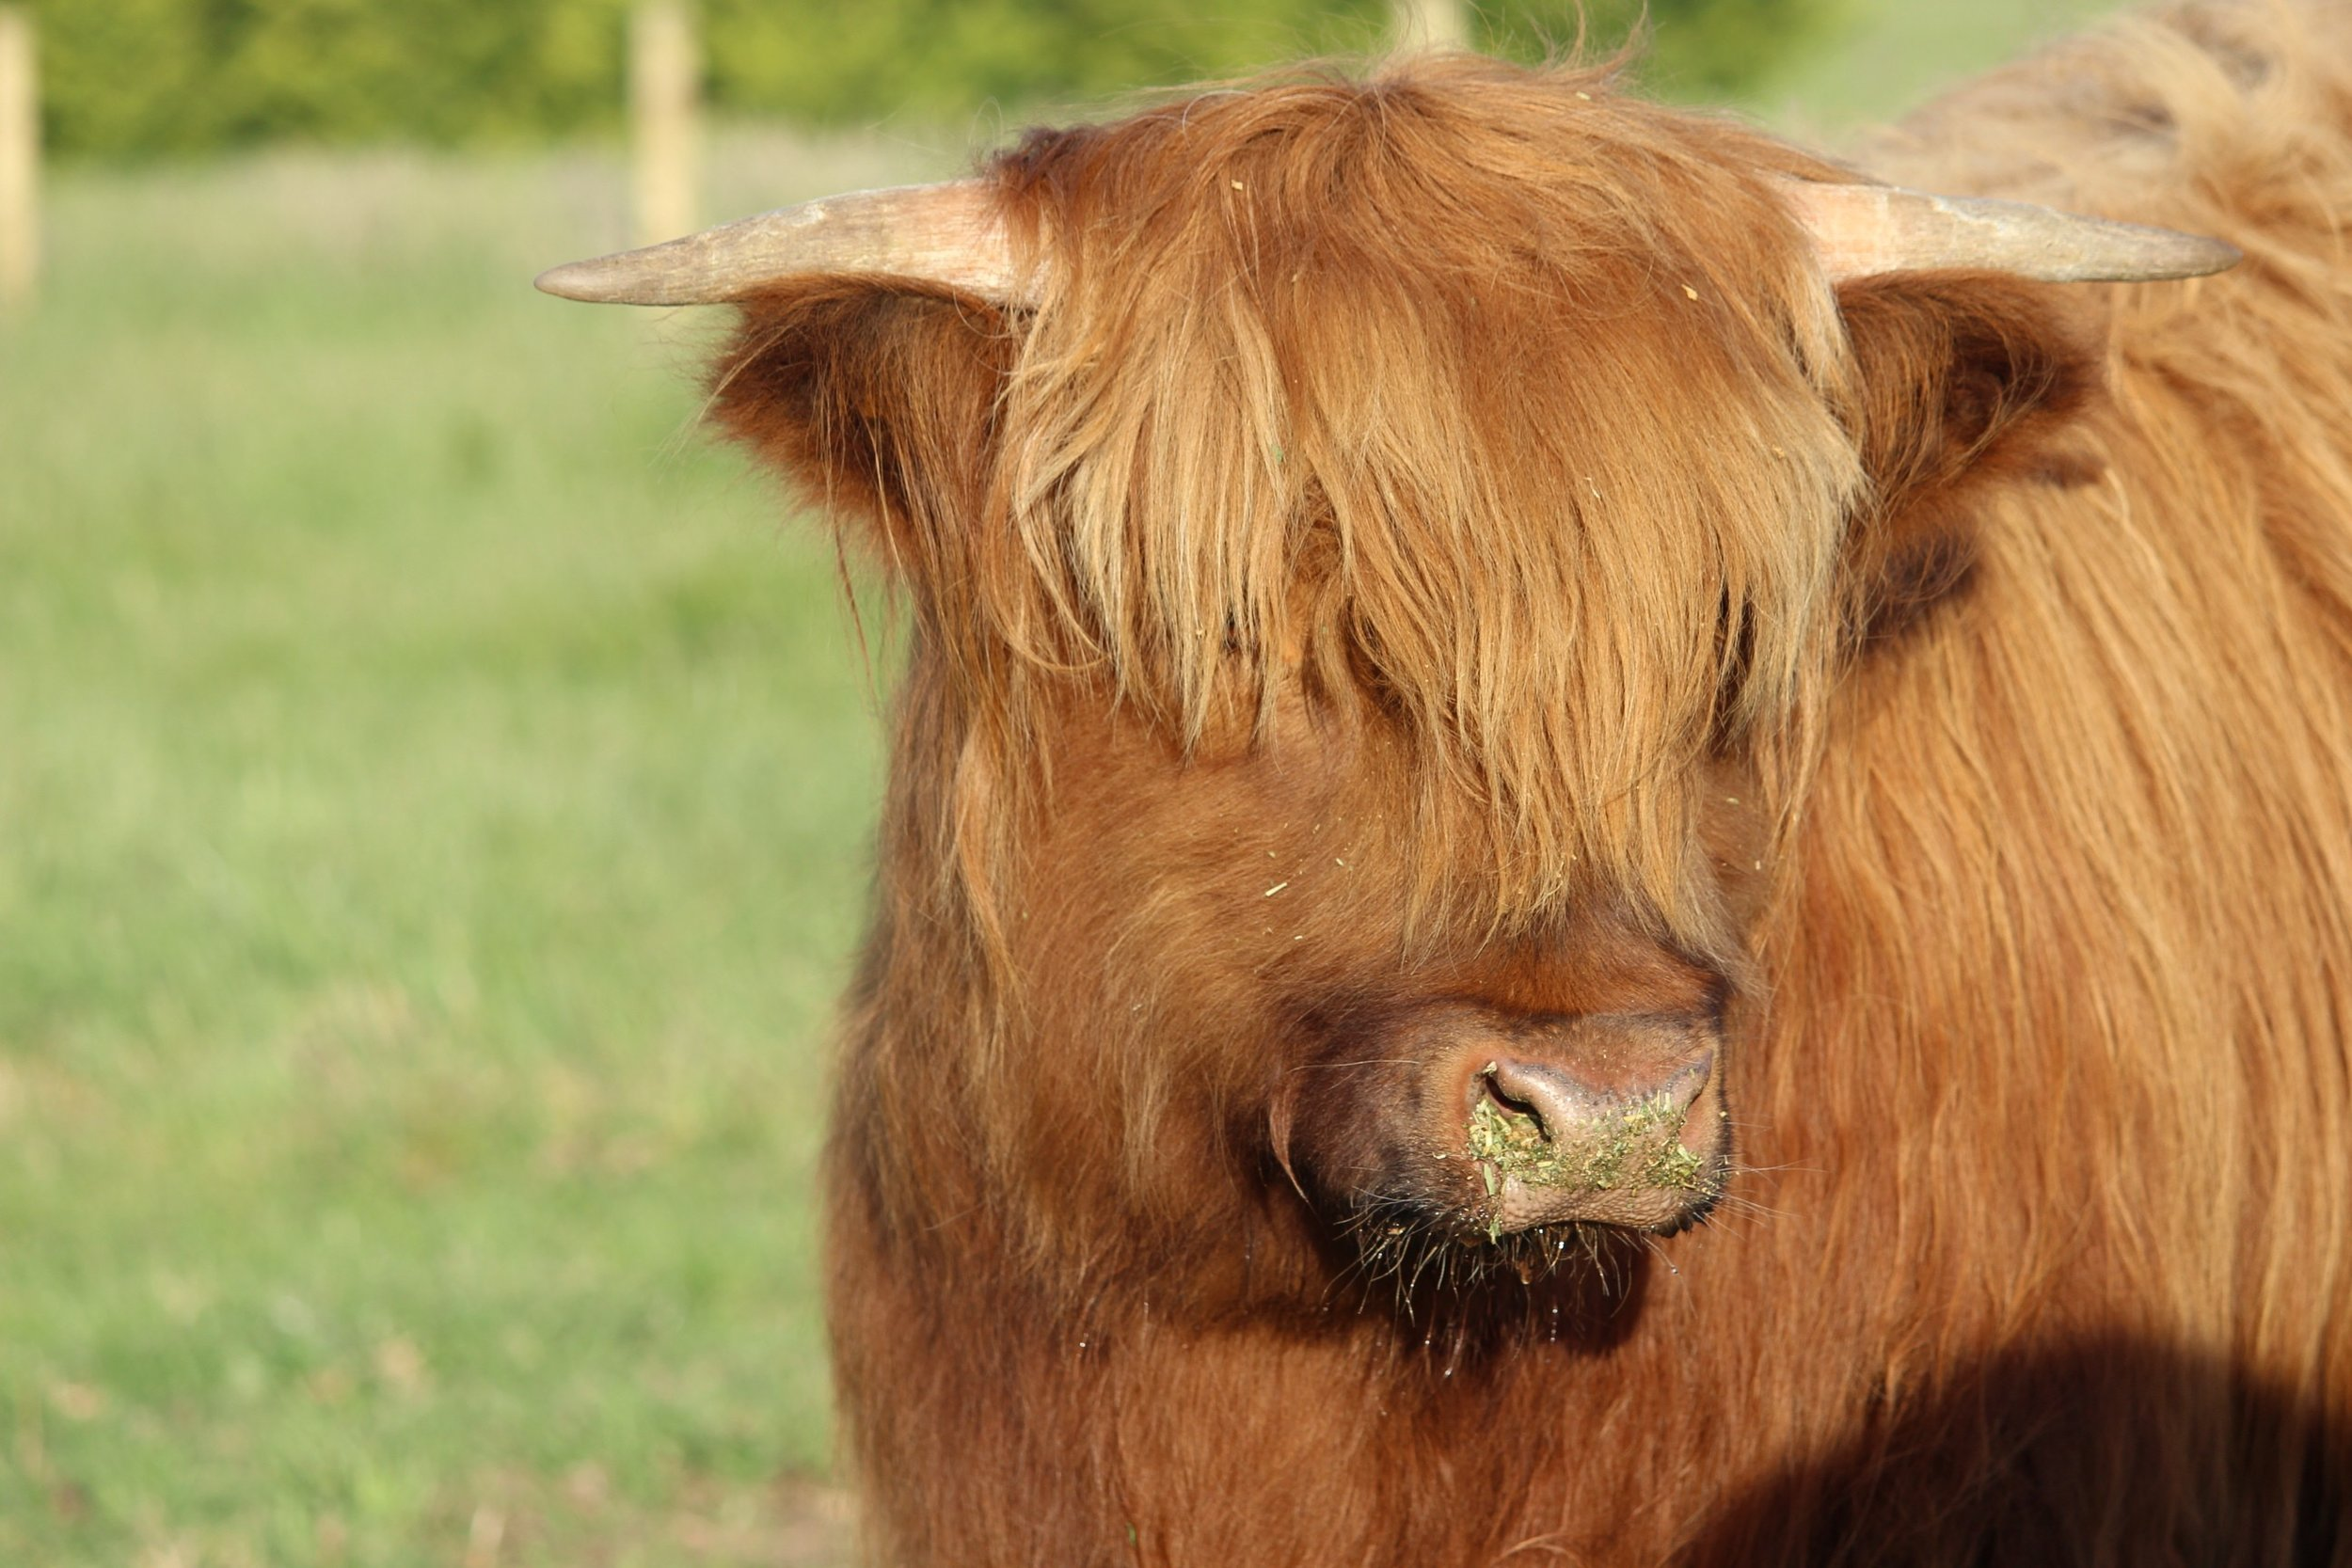 rory - While he may not be the Boss, this guy has our hearts. He is shy and takes longer to warm to people. This 'hairy coo' loves a scratch and enjoys lucern as a treat.